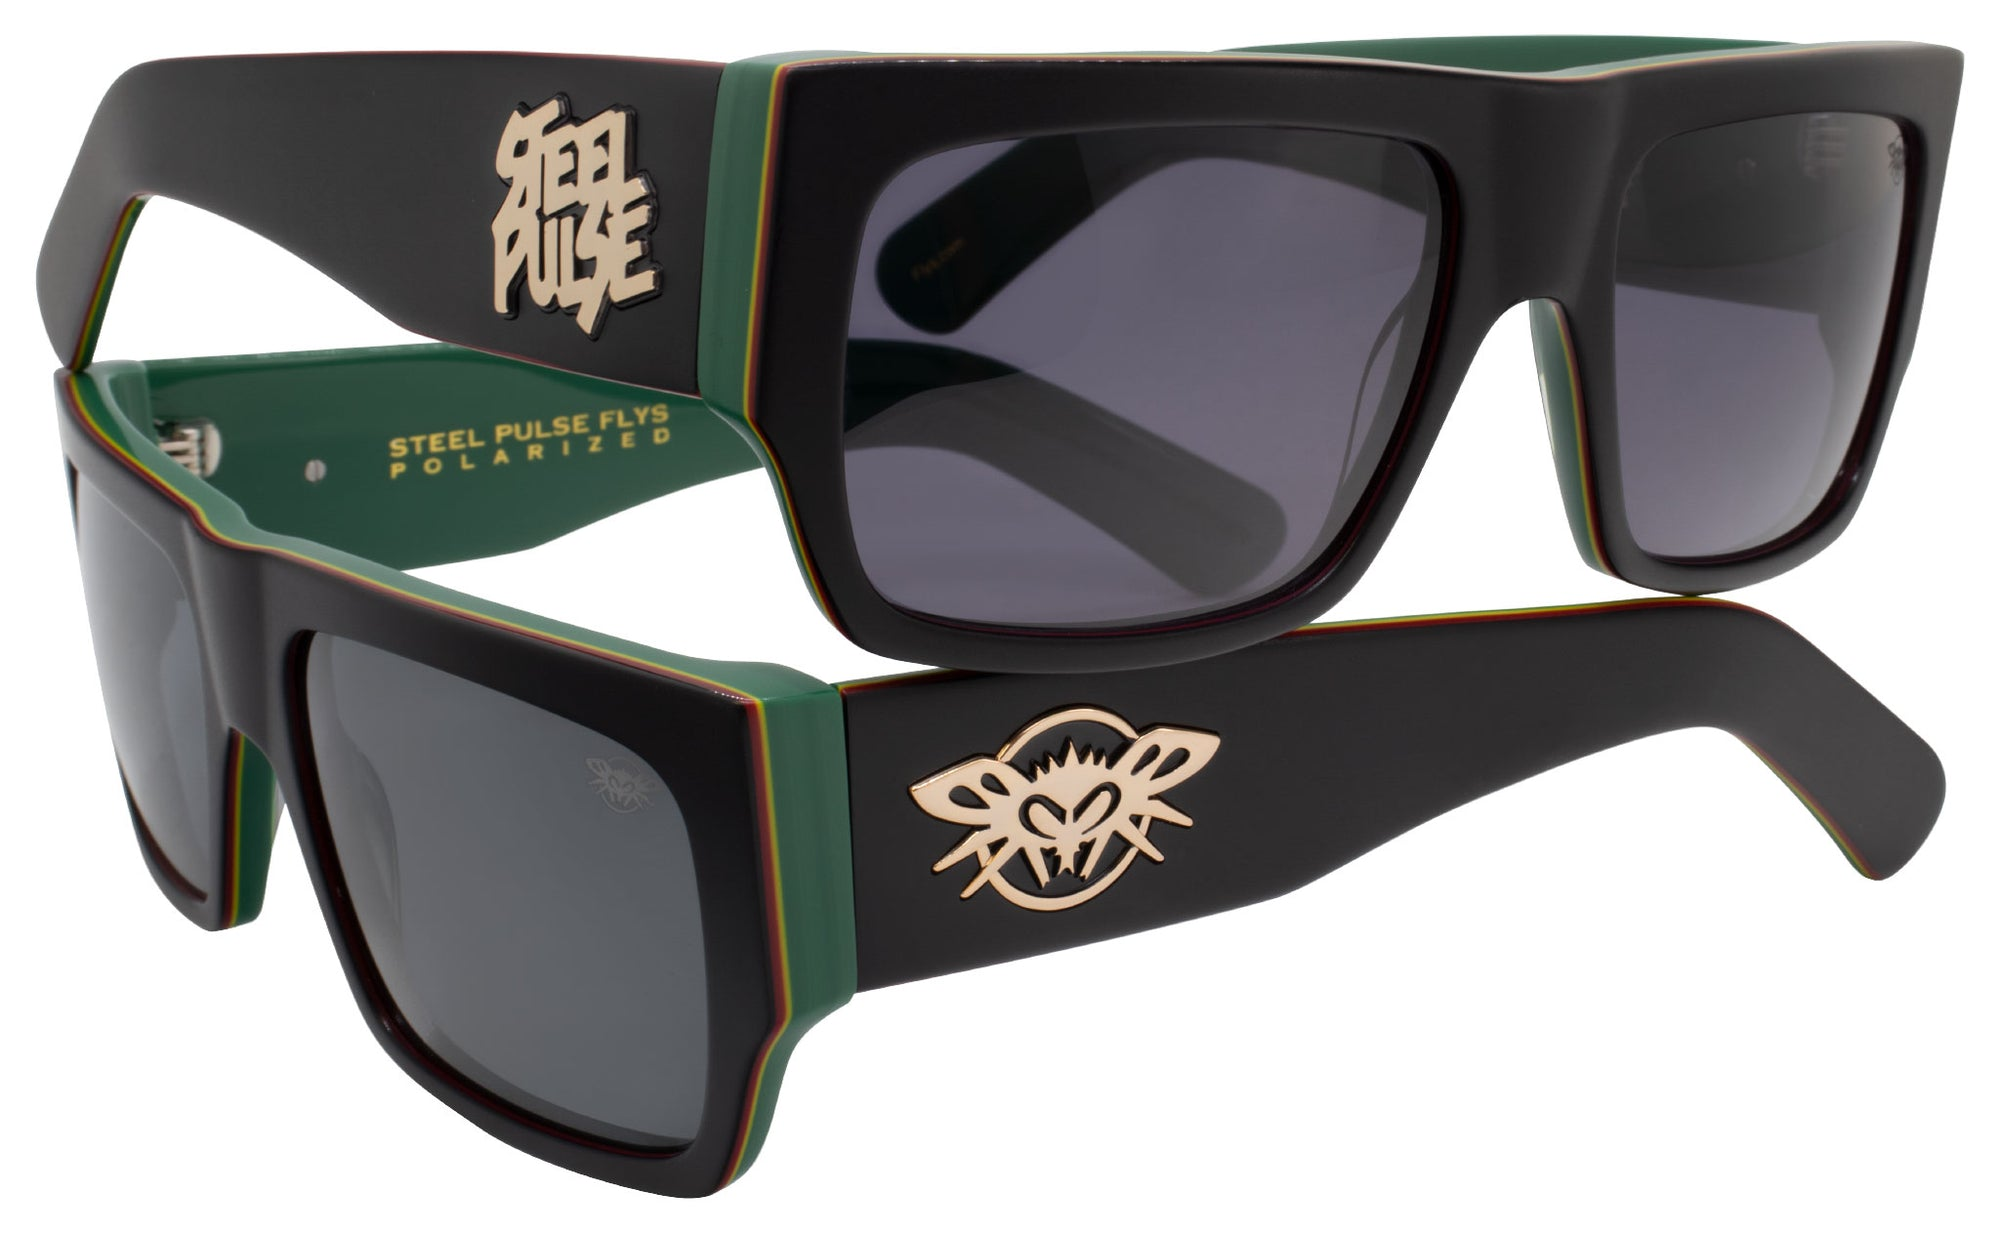 Steel Pulse Flys Collab